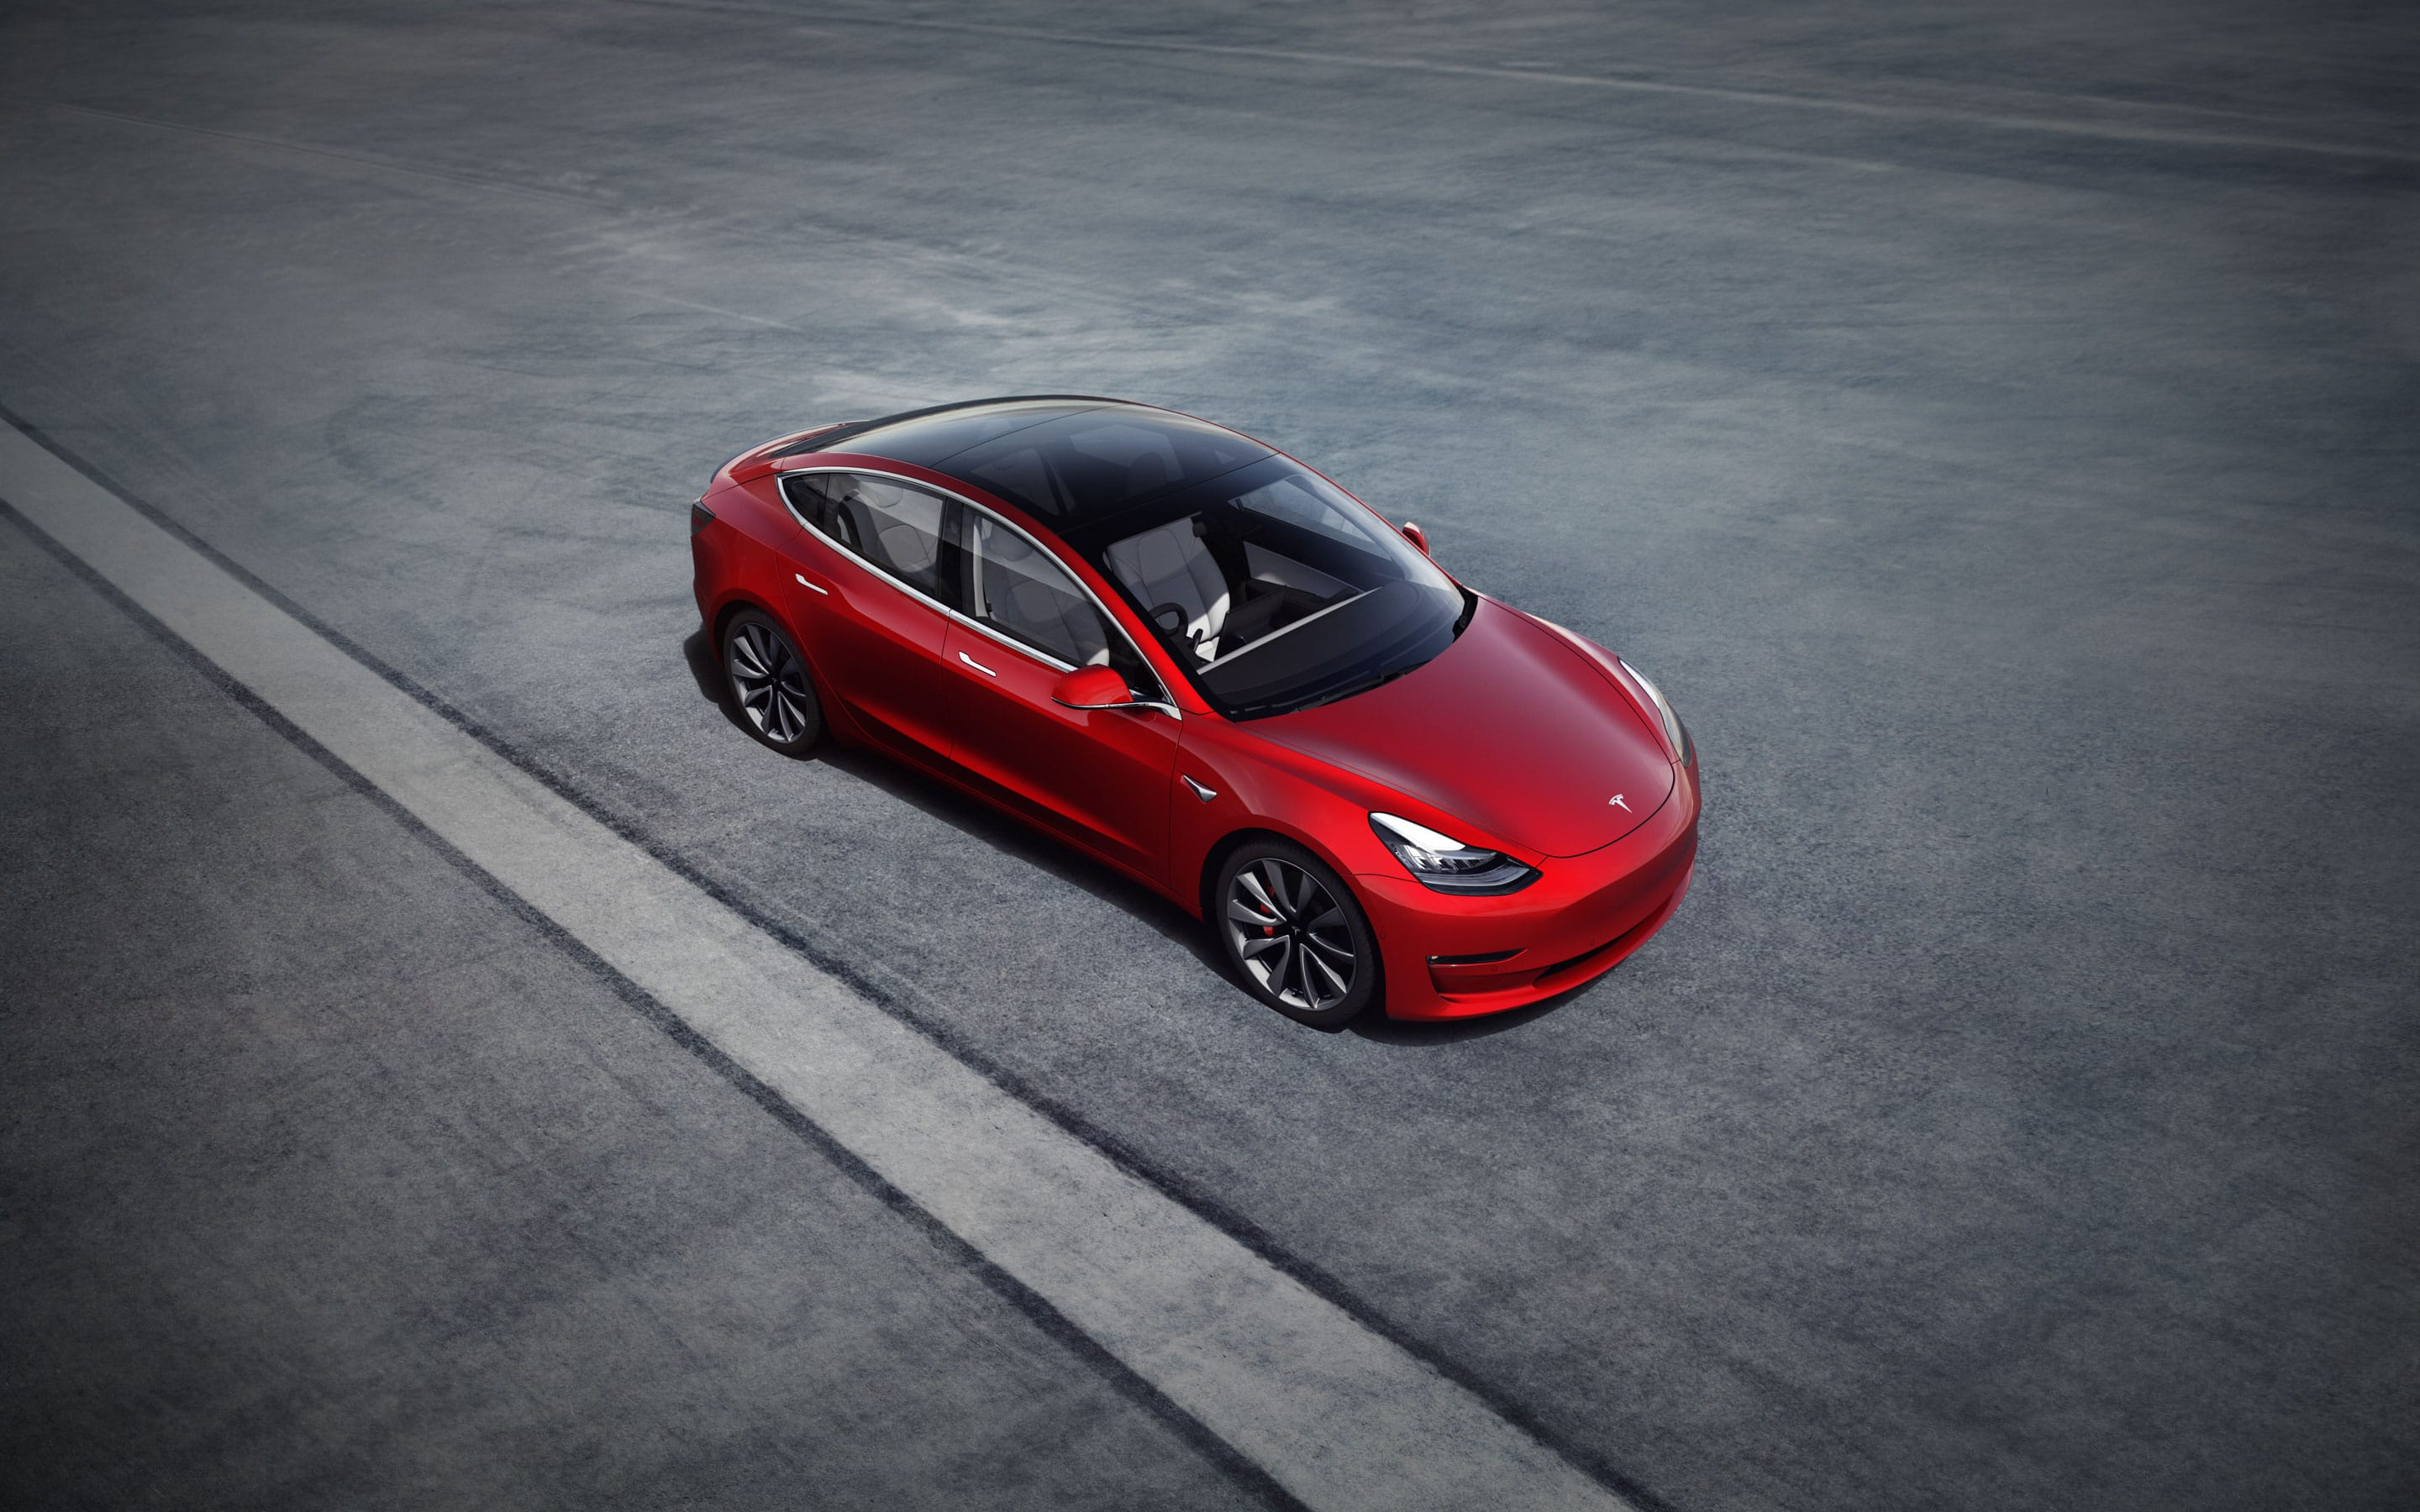 Birds-eye view of red Model 3